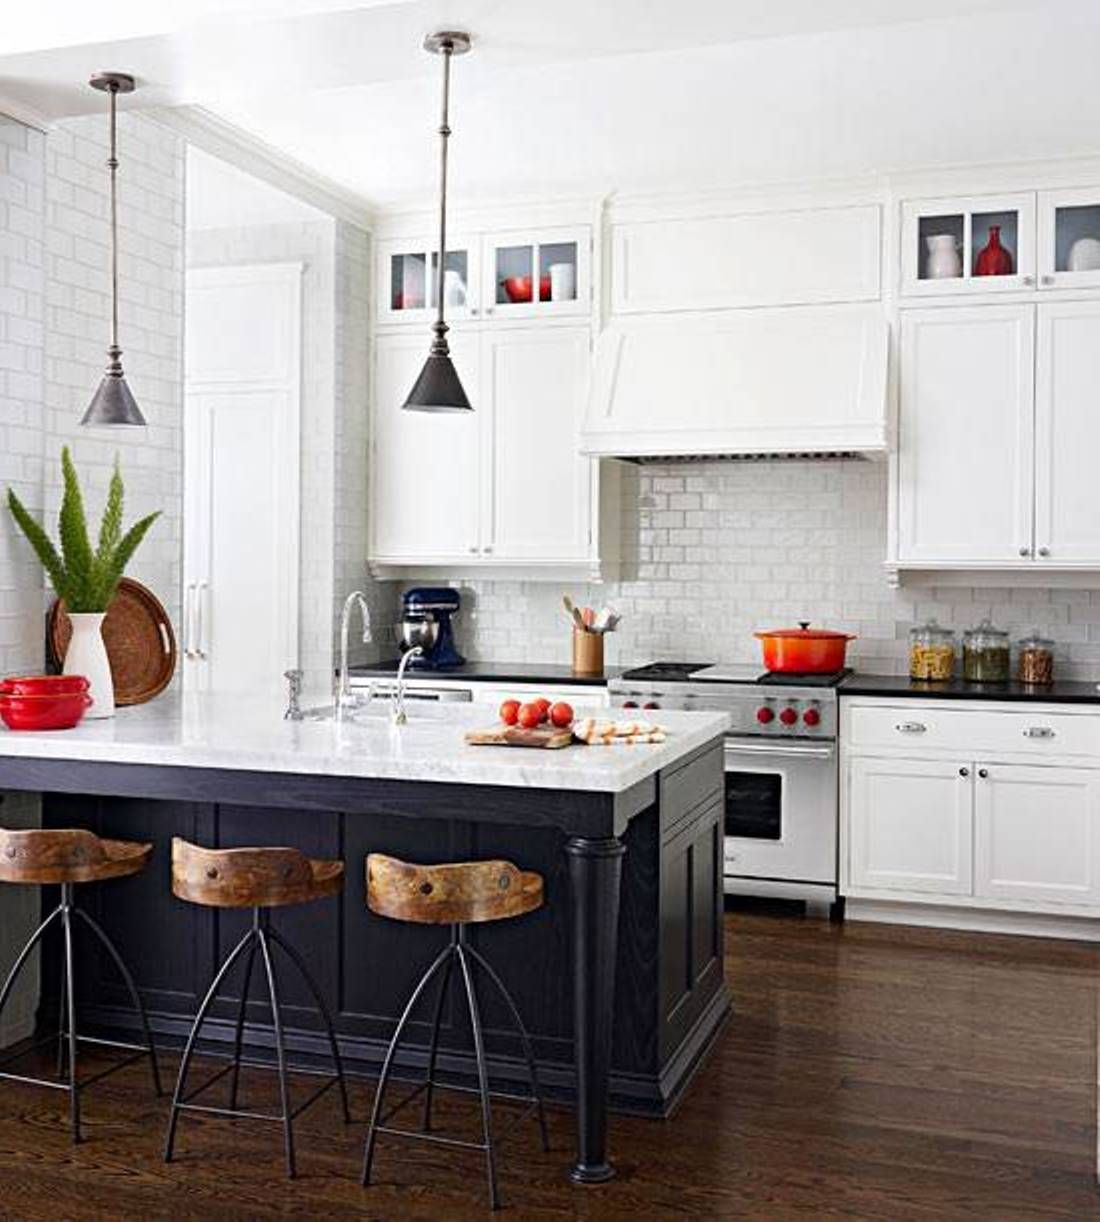 Modern Kitchen Layout Plans island kitchen floor is not actually a form of a modern kitchen